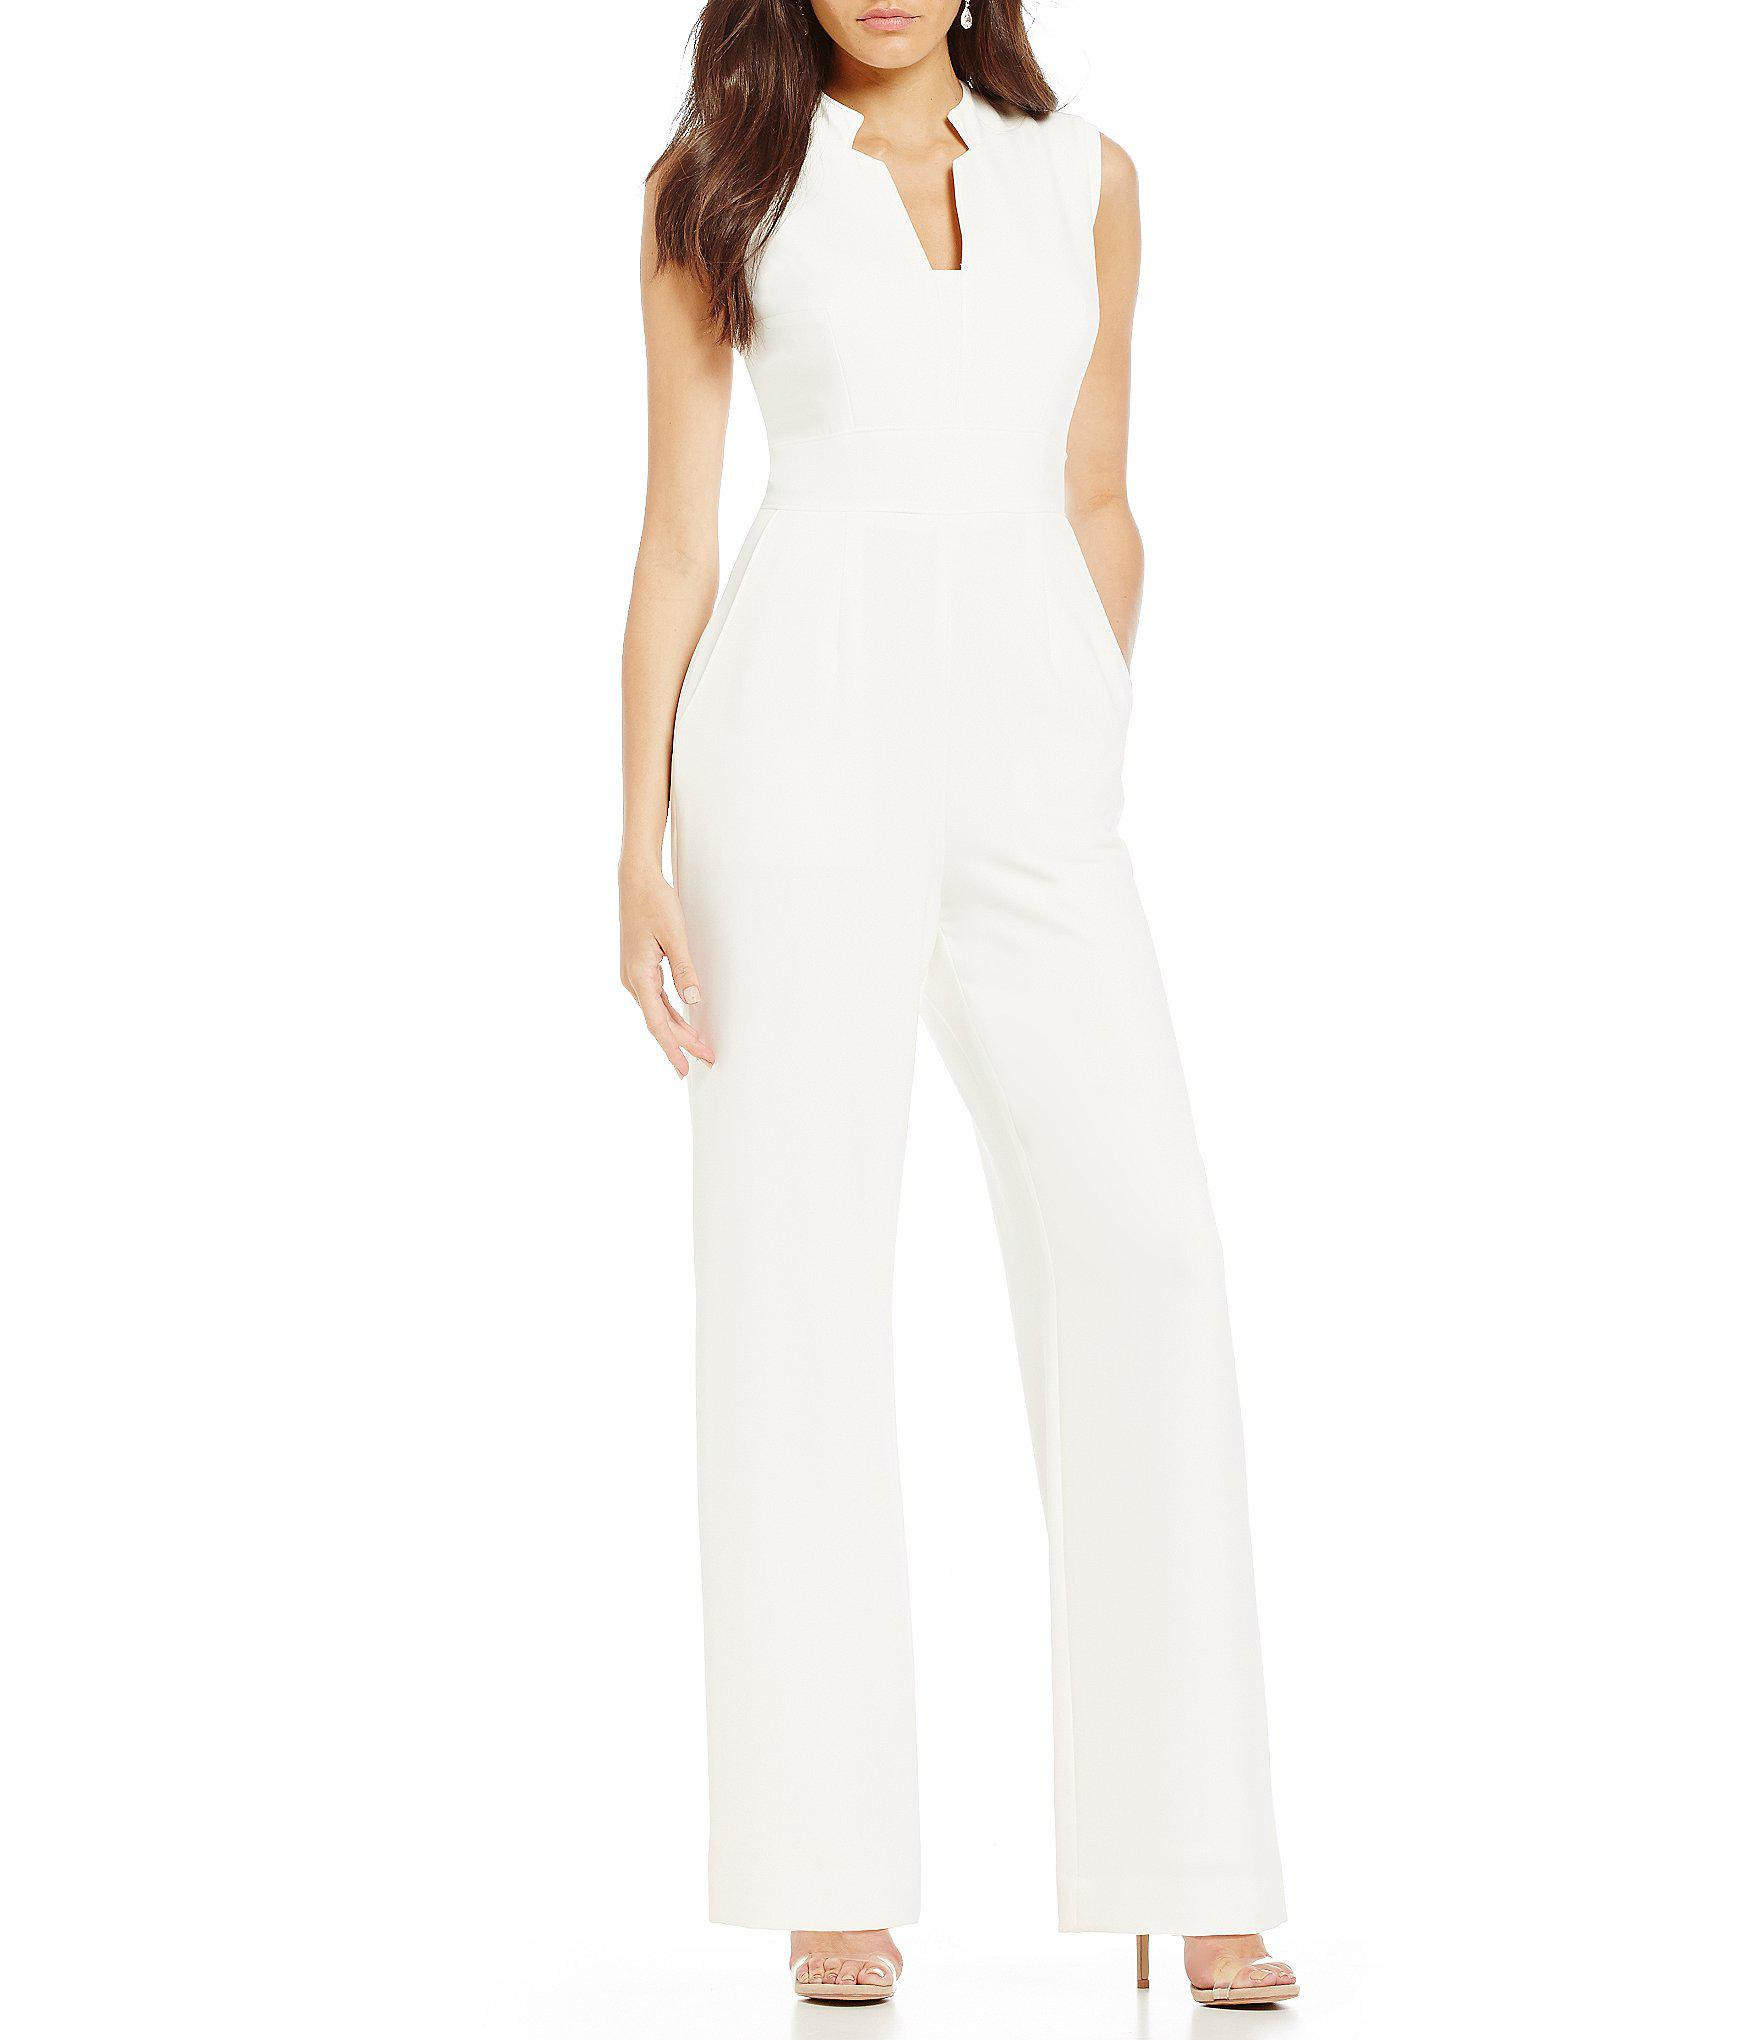 0c46b59054f Tahari. Women s White Tahari By Asl Raised Collar Sleeveless Solid Crepe  Jumpsuit